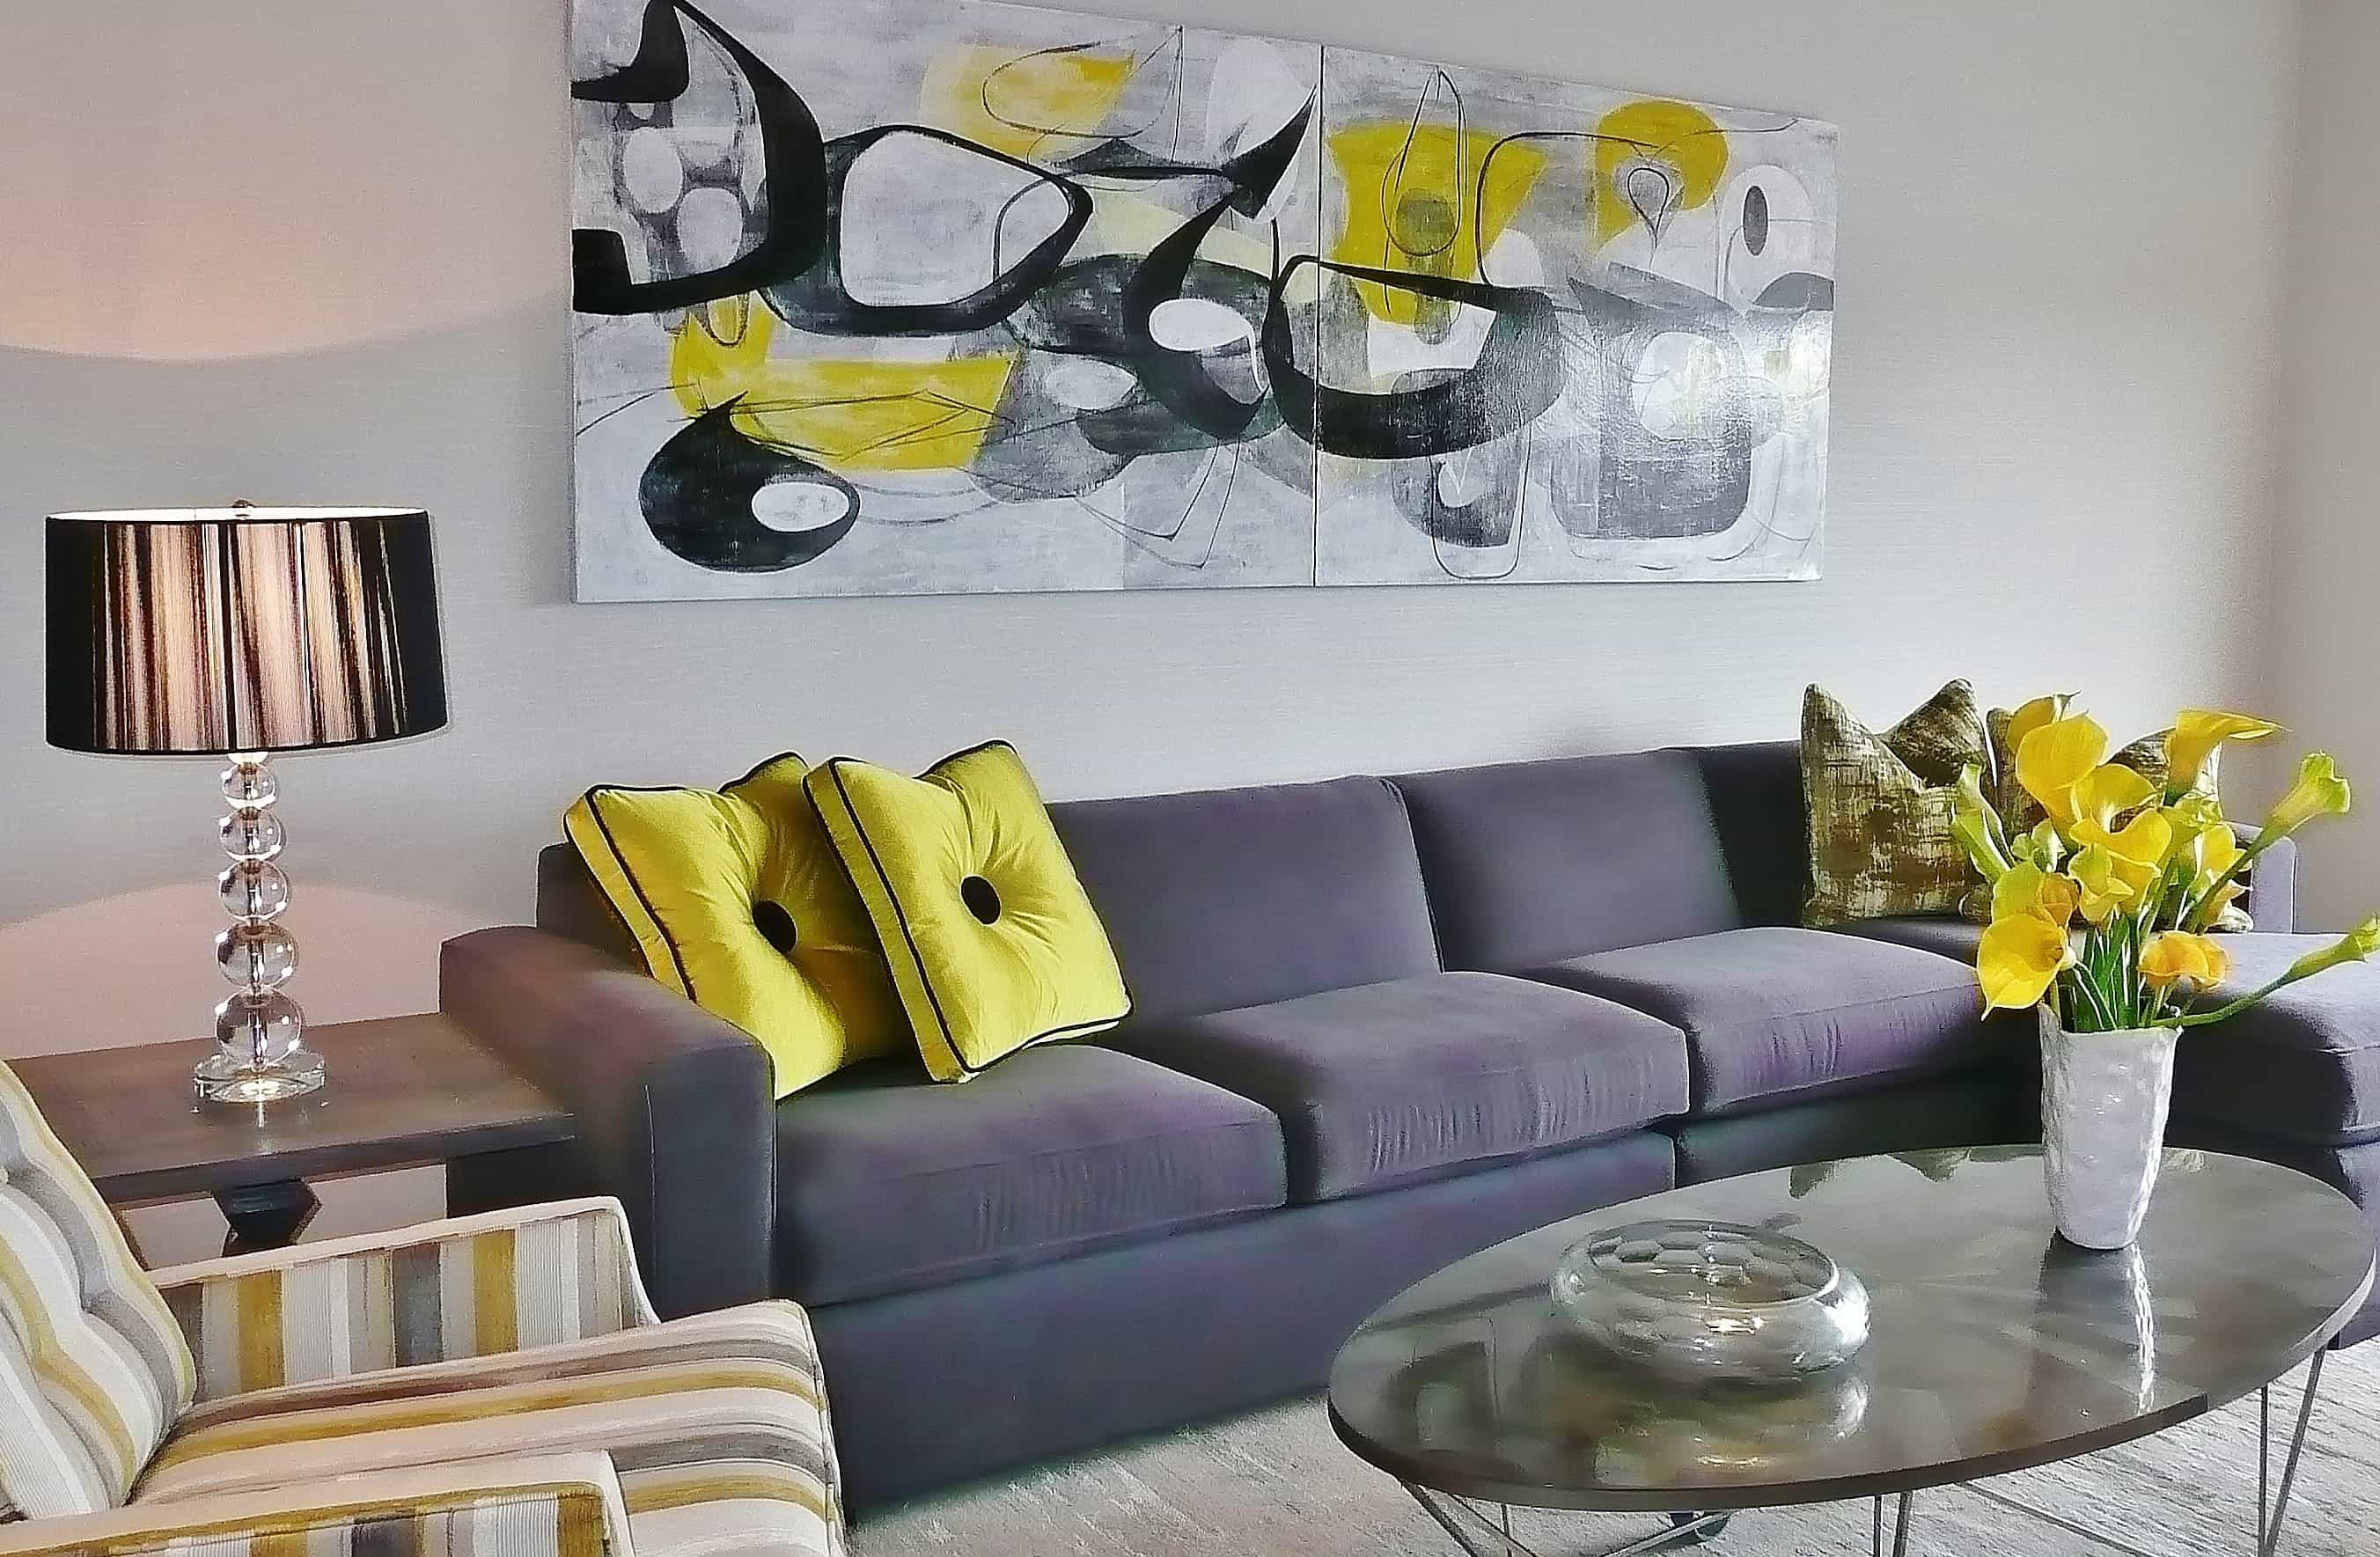 Low Budget Decoration For Modern Fascinatingly Attractive Living Room With Abstract Art (View 2 of 16)